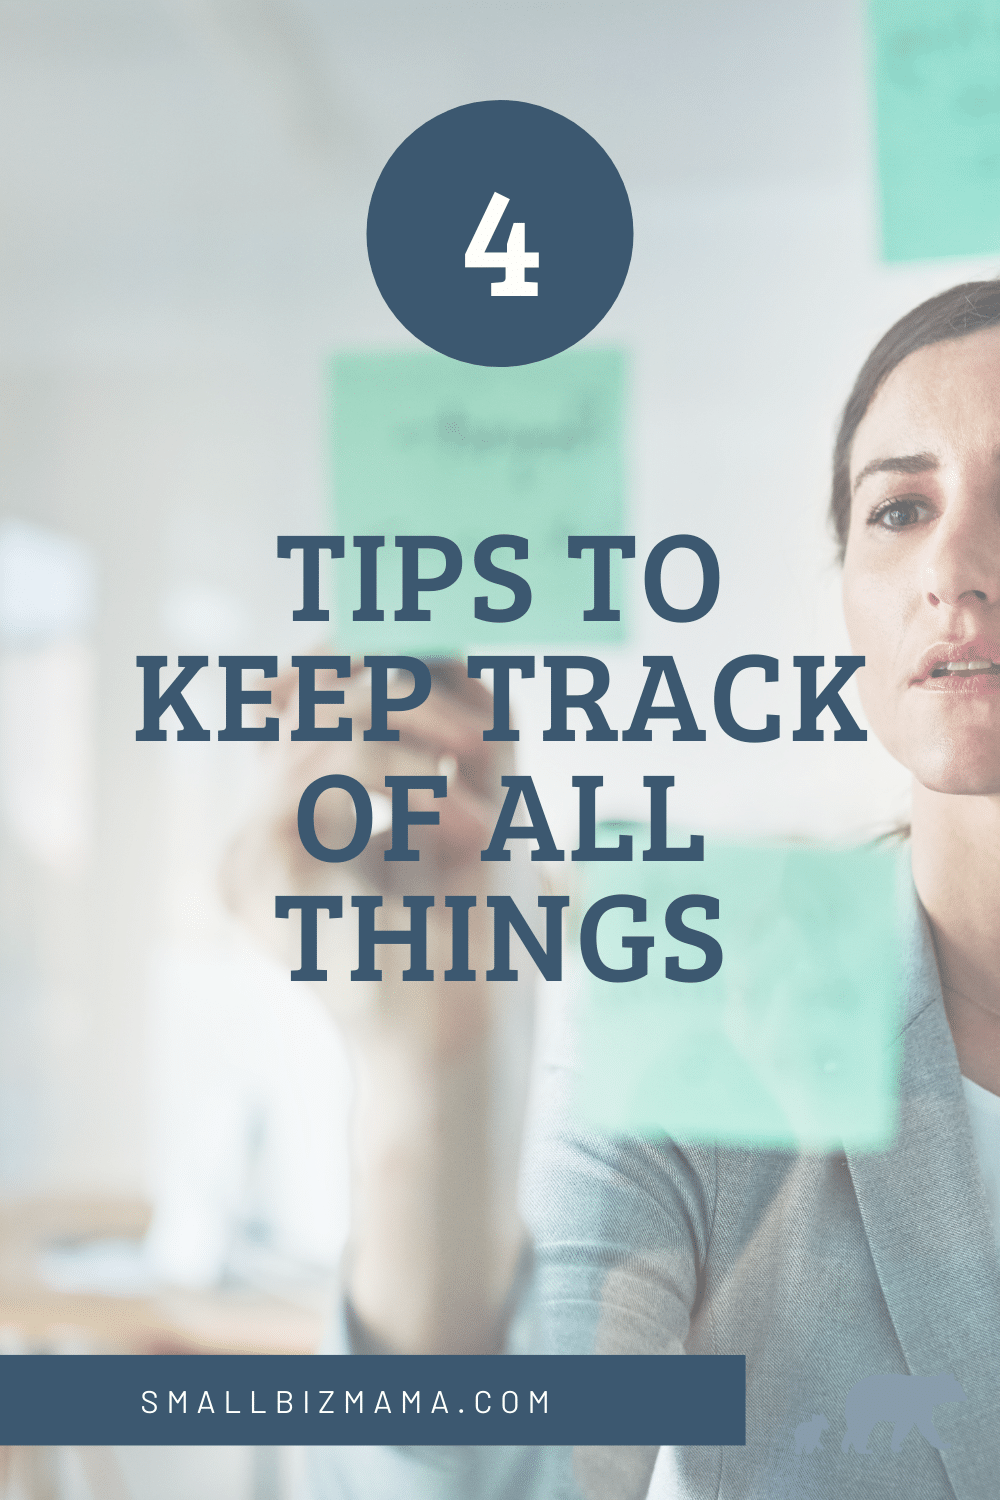 4 tips to keep track of all things